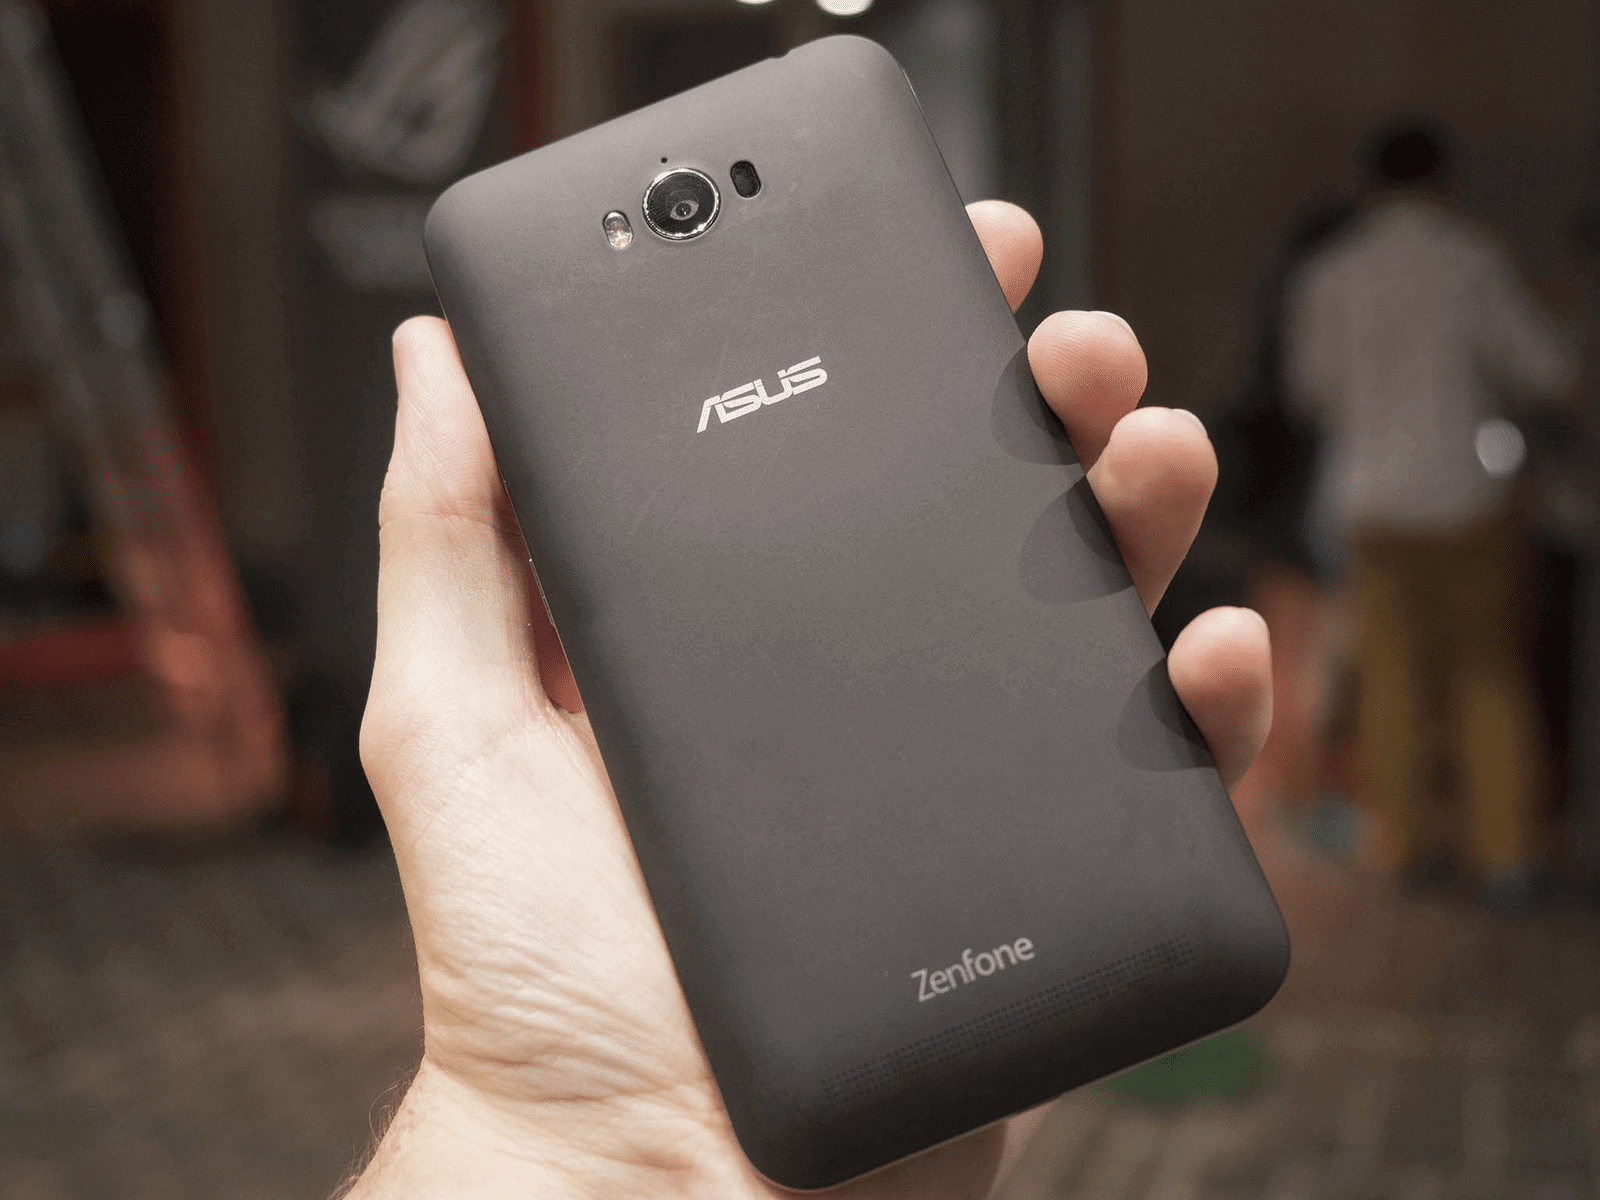 How To Update Asus Zenfone Max To Lineage OS 15 Android 8.0 Oreo Custom ROM 1